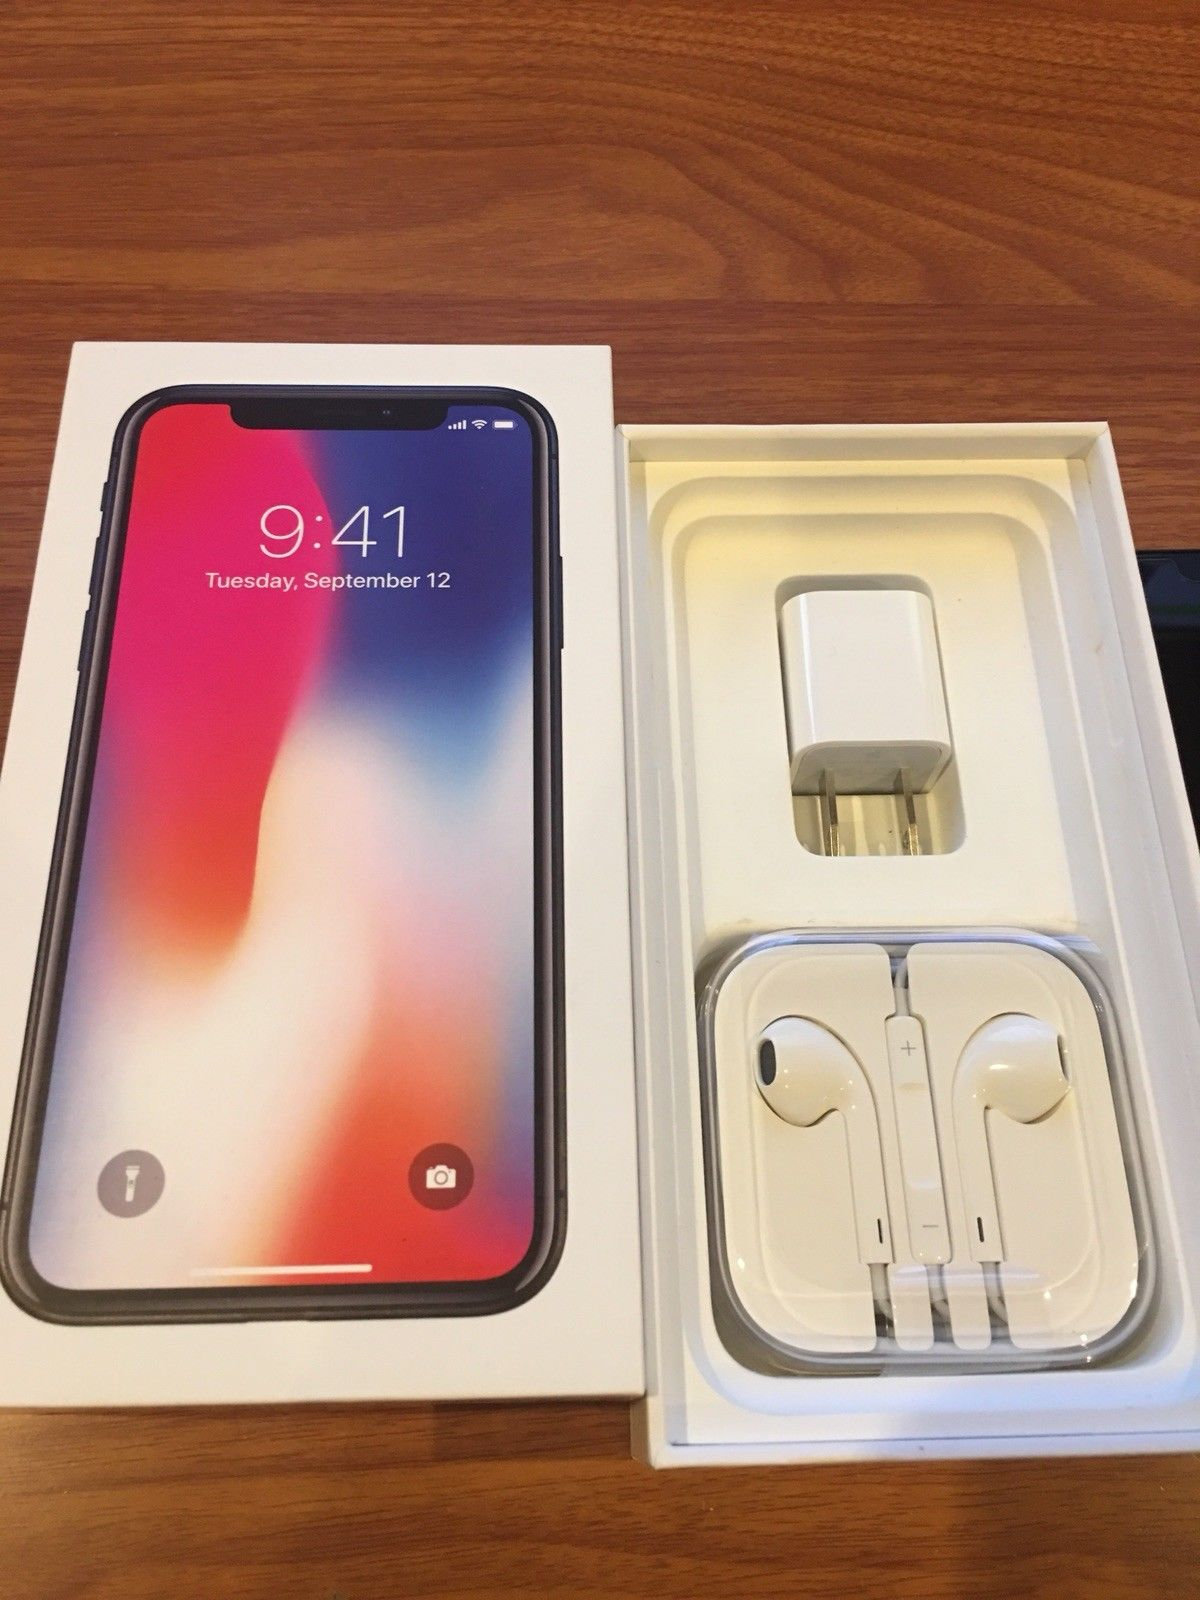 Apple iPhone X 256gb/Samsung Galaxy S9 plus 64gb/Sony Playstation 4 Pro 1tb